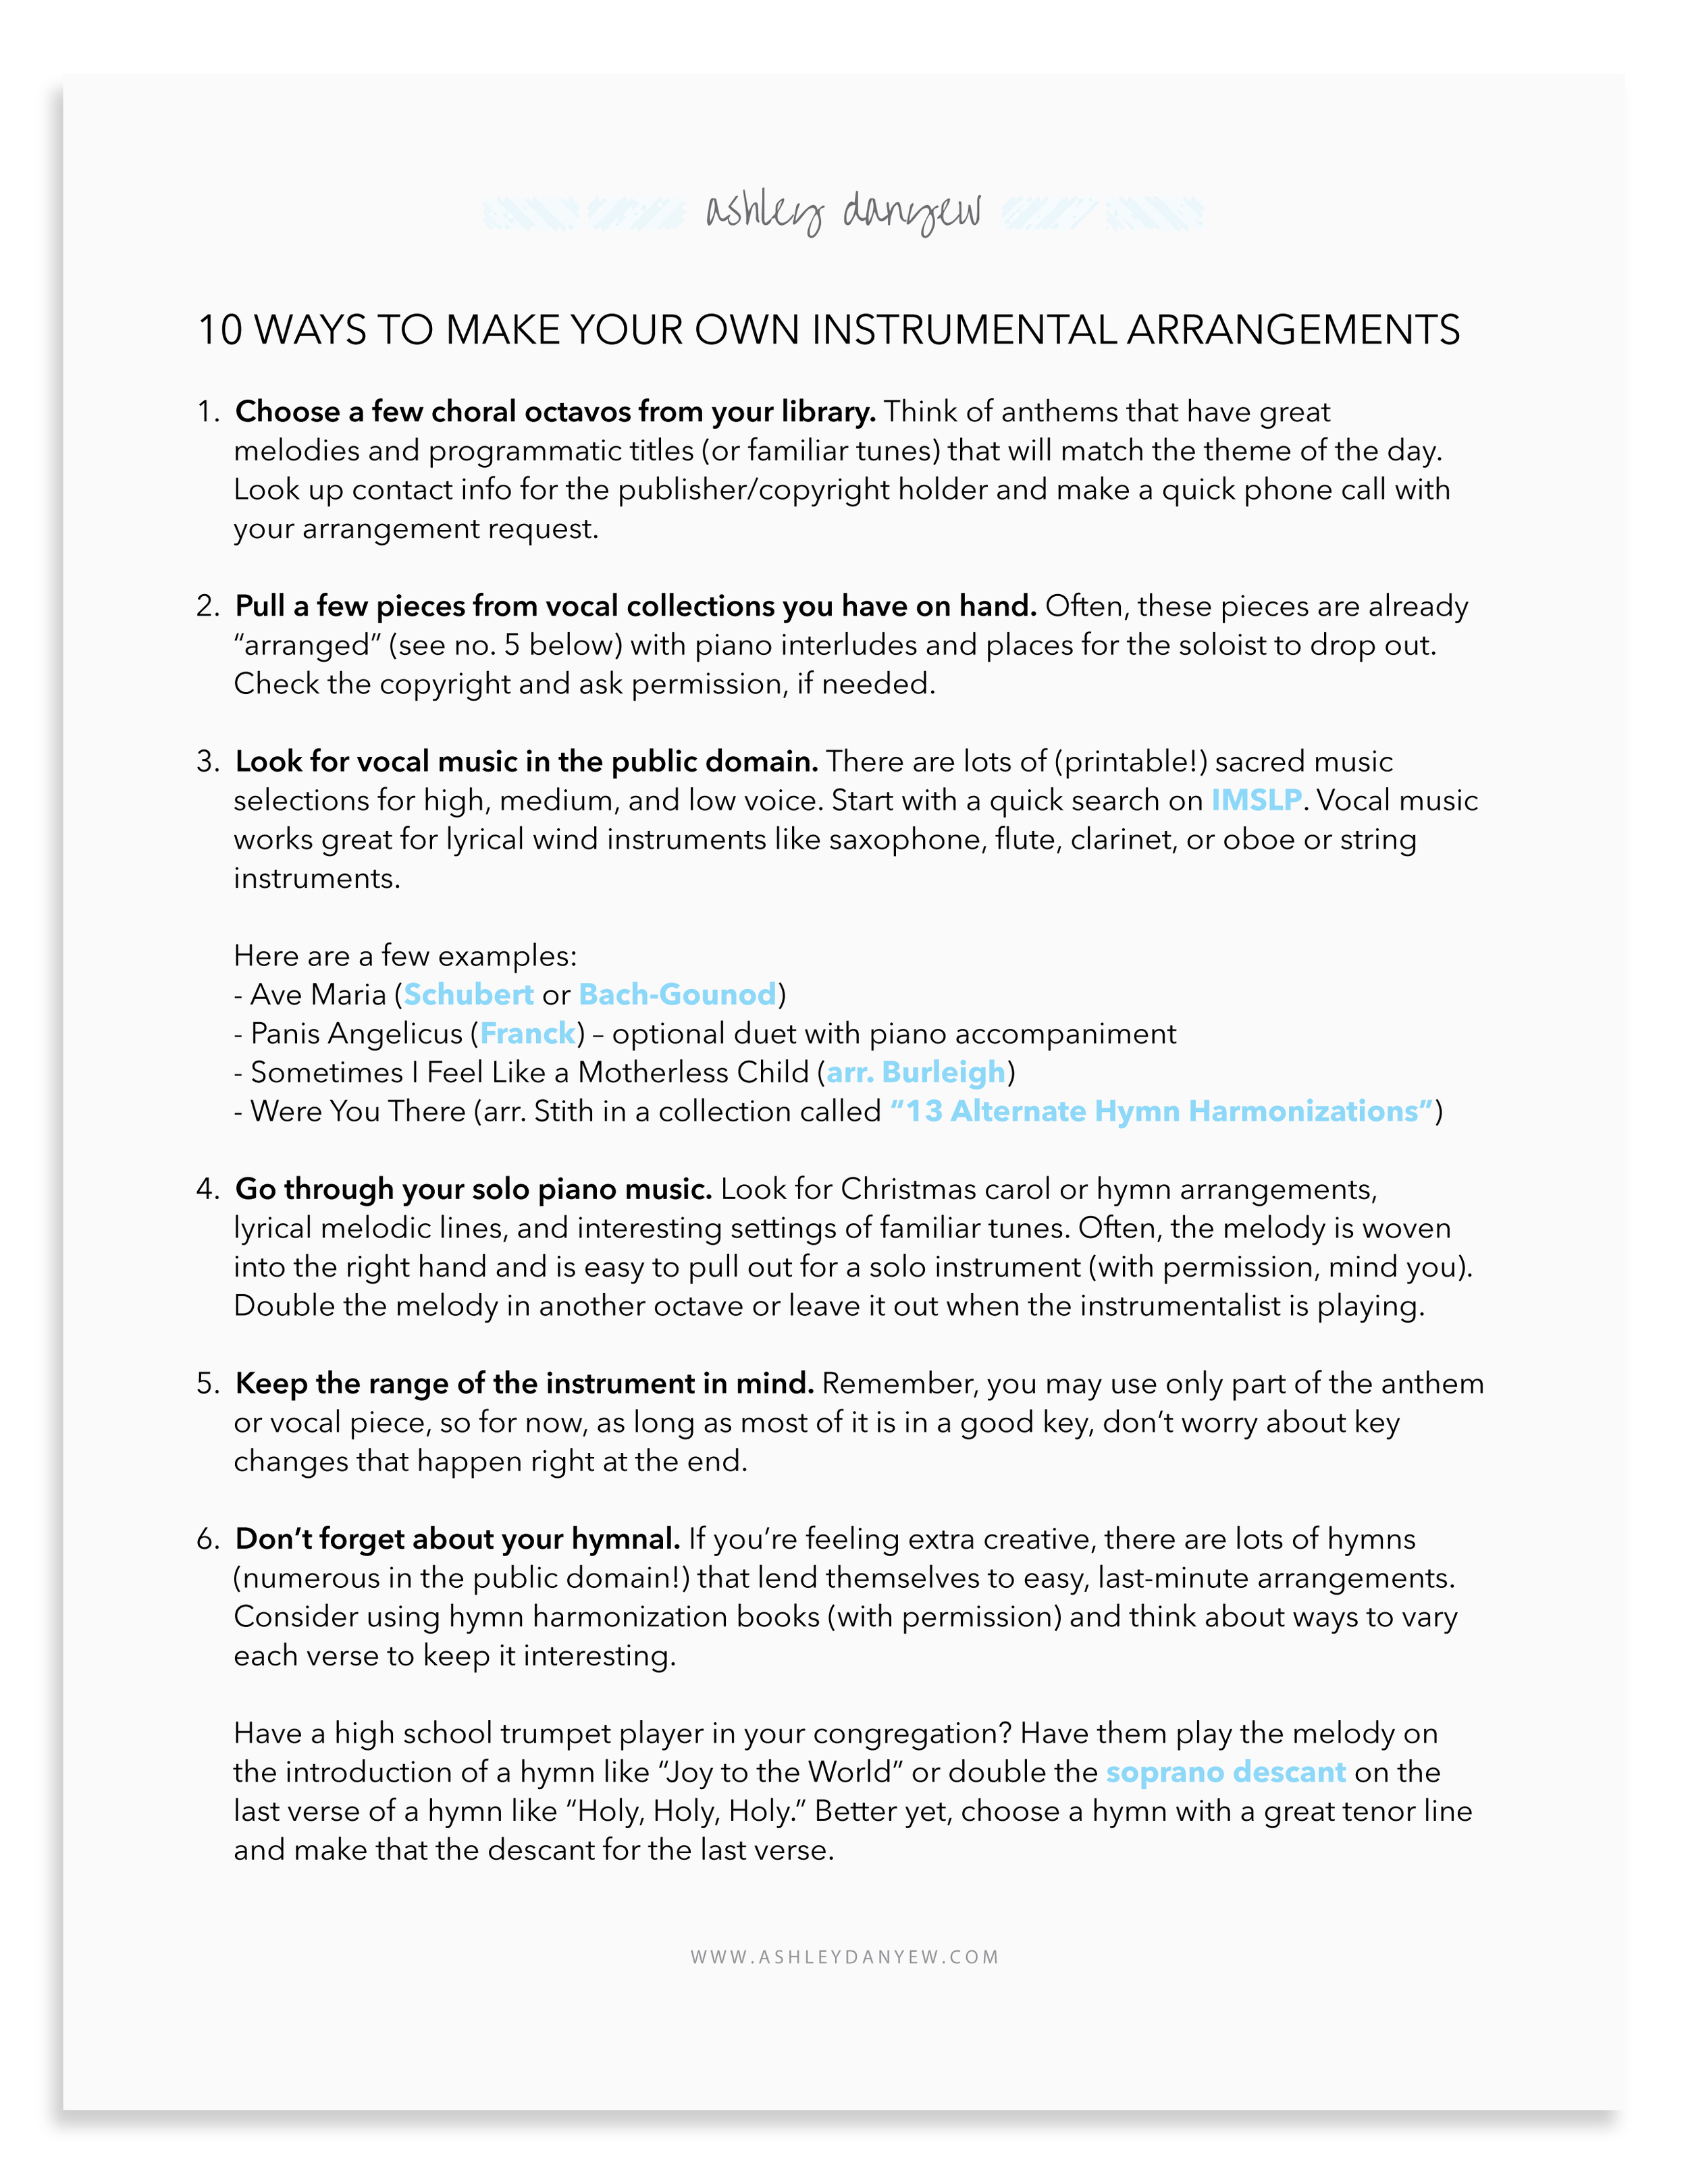 10 Ways to Create Your Own Instrumental Arrangements.png